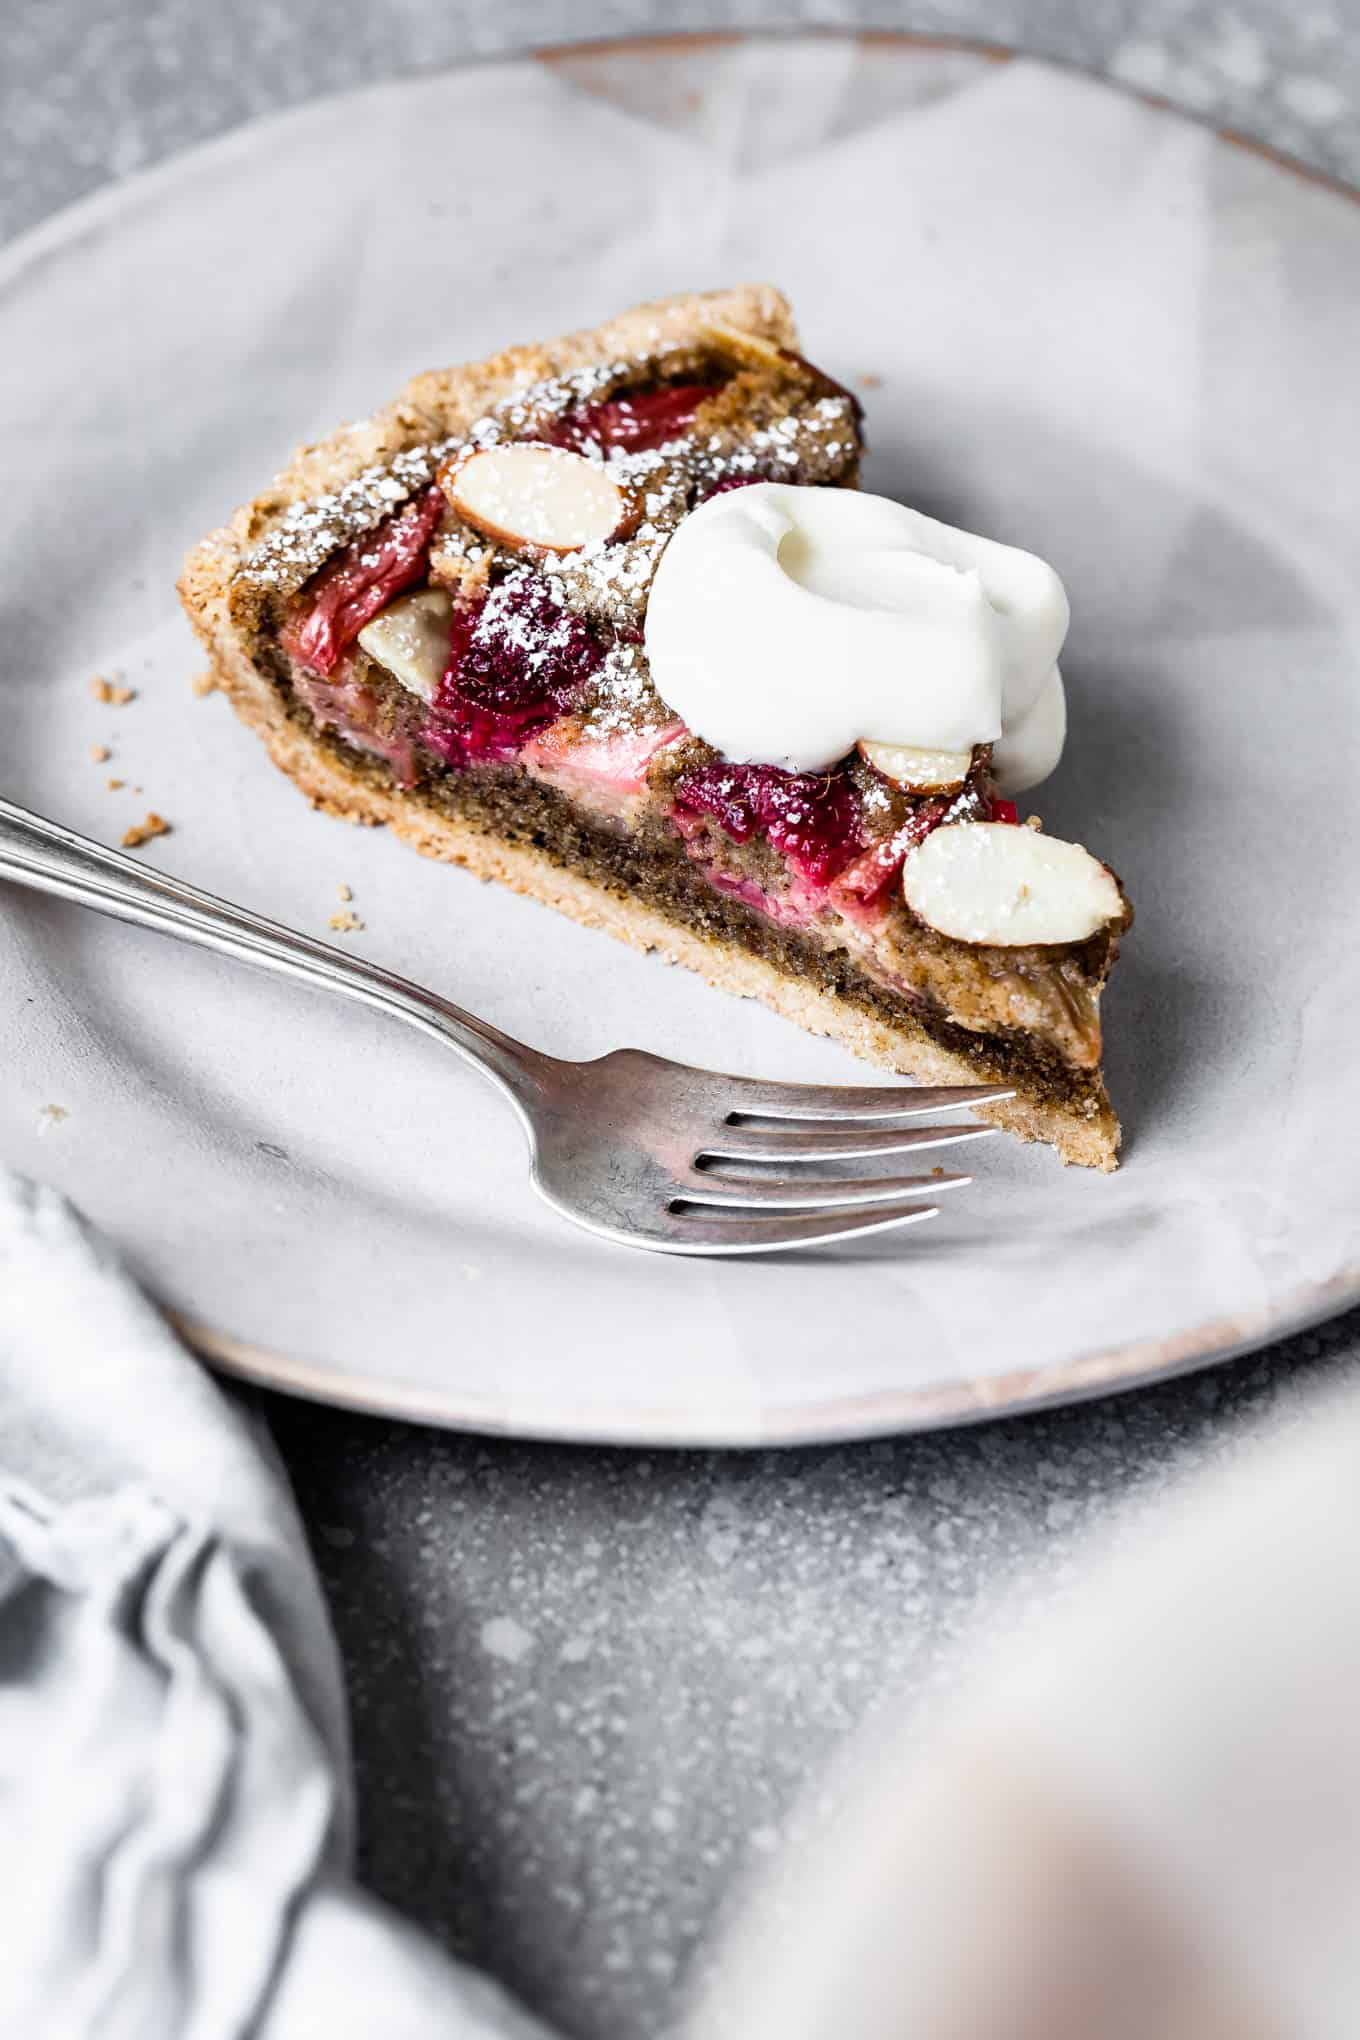 Gluten-Free Tart with Almond Cream